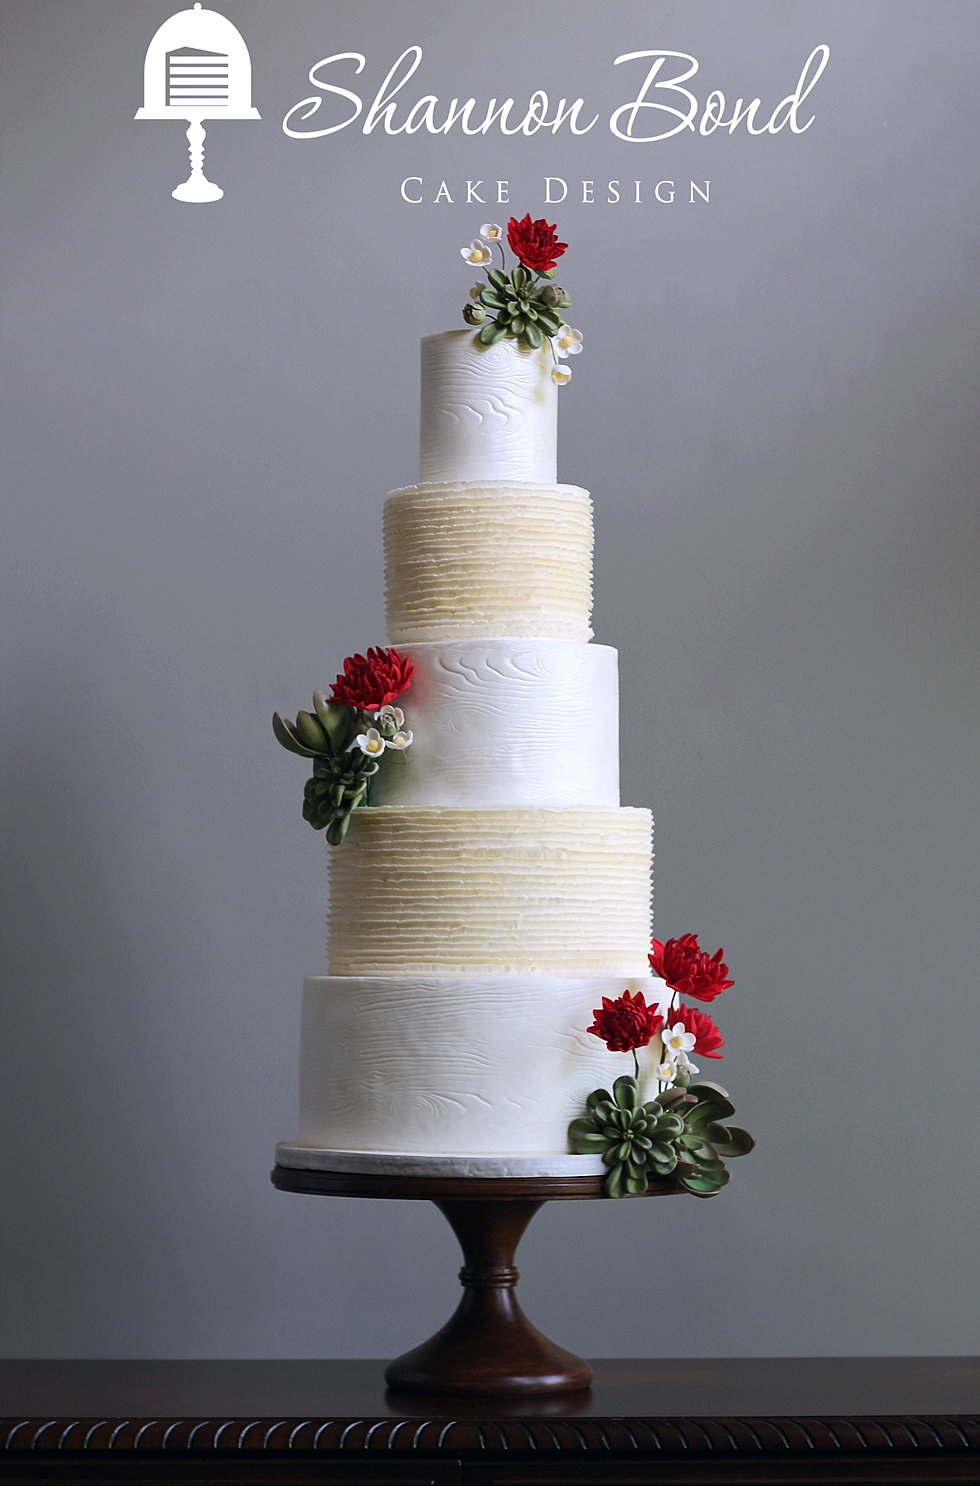 Shannon bond cake design kansas city wedding and custom cakes wood grain and ruffle wedding cake junglespirit Gallery